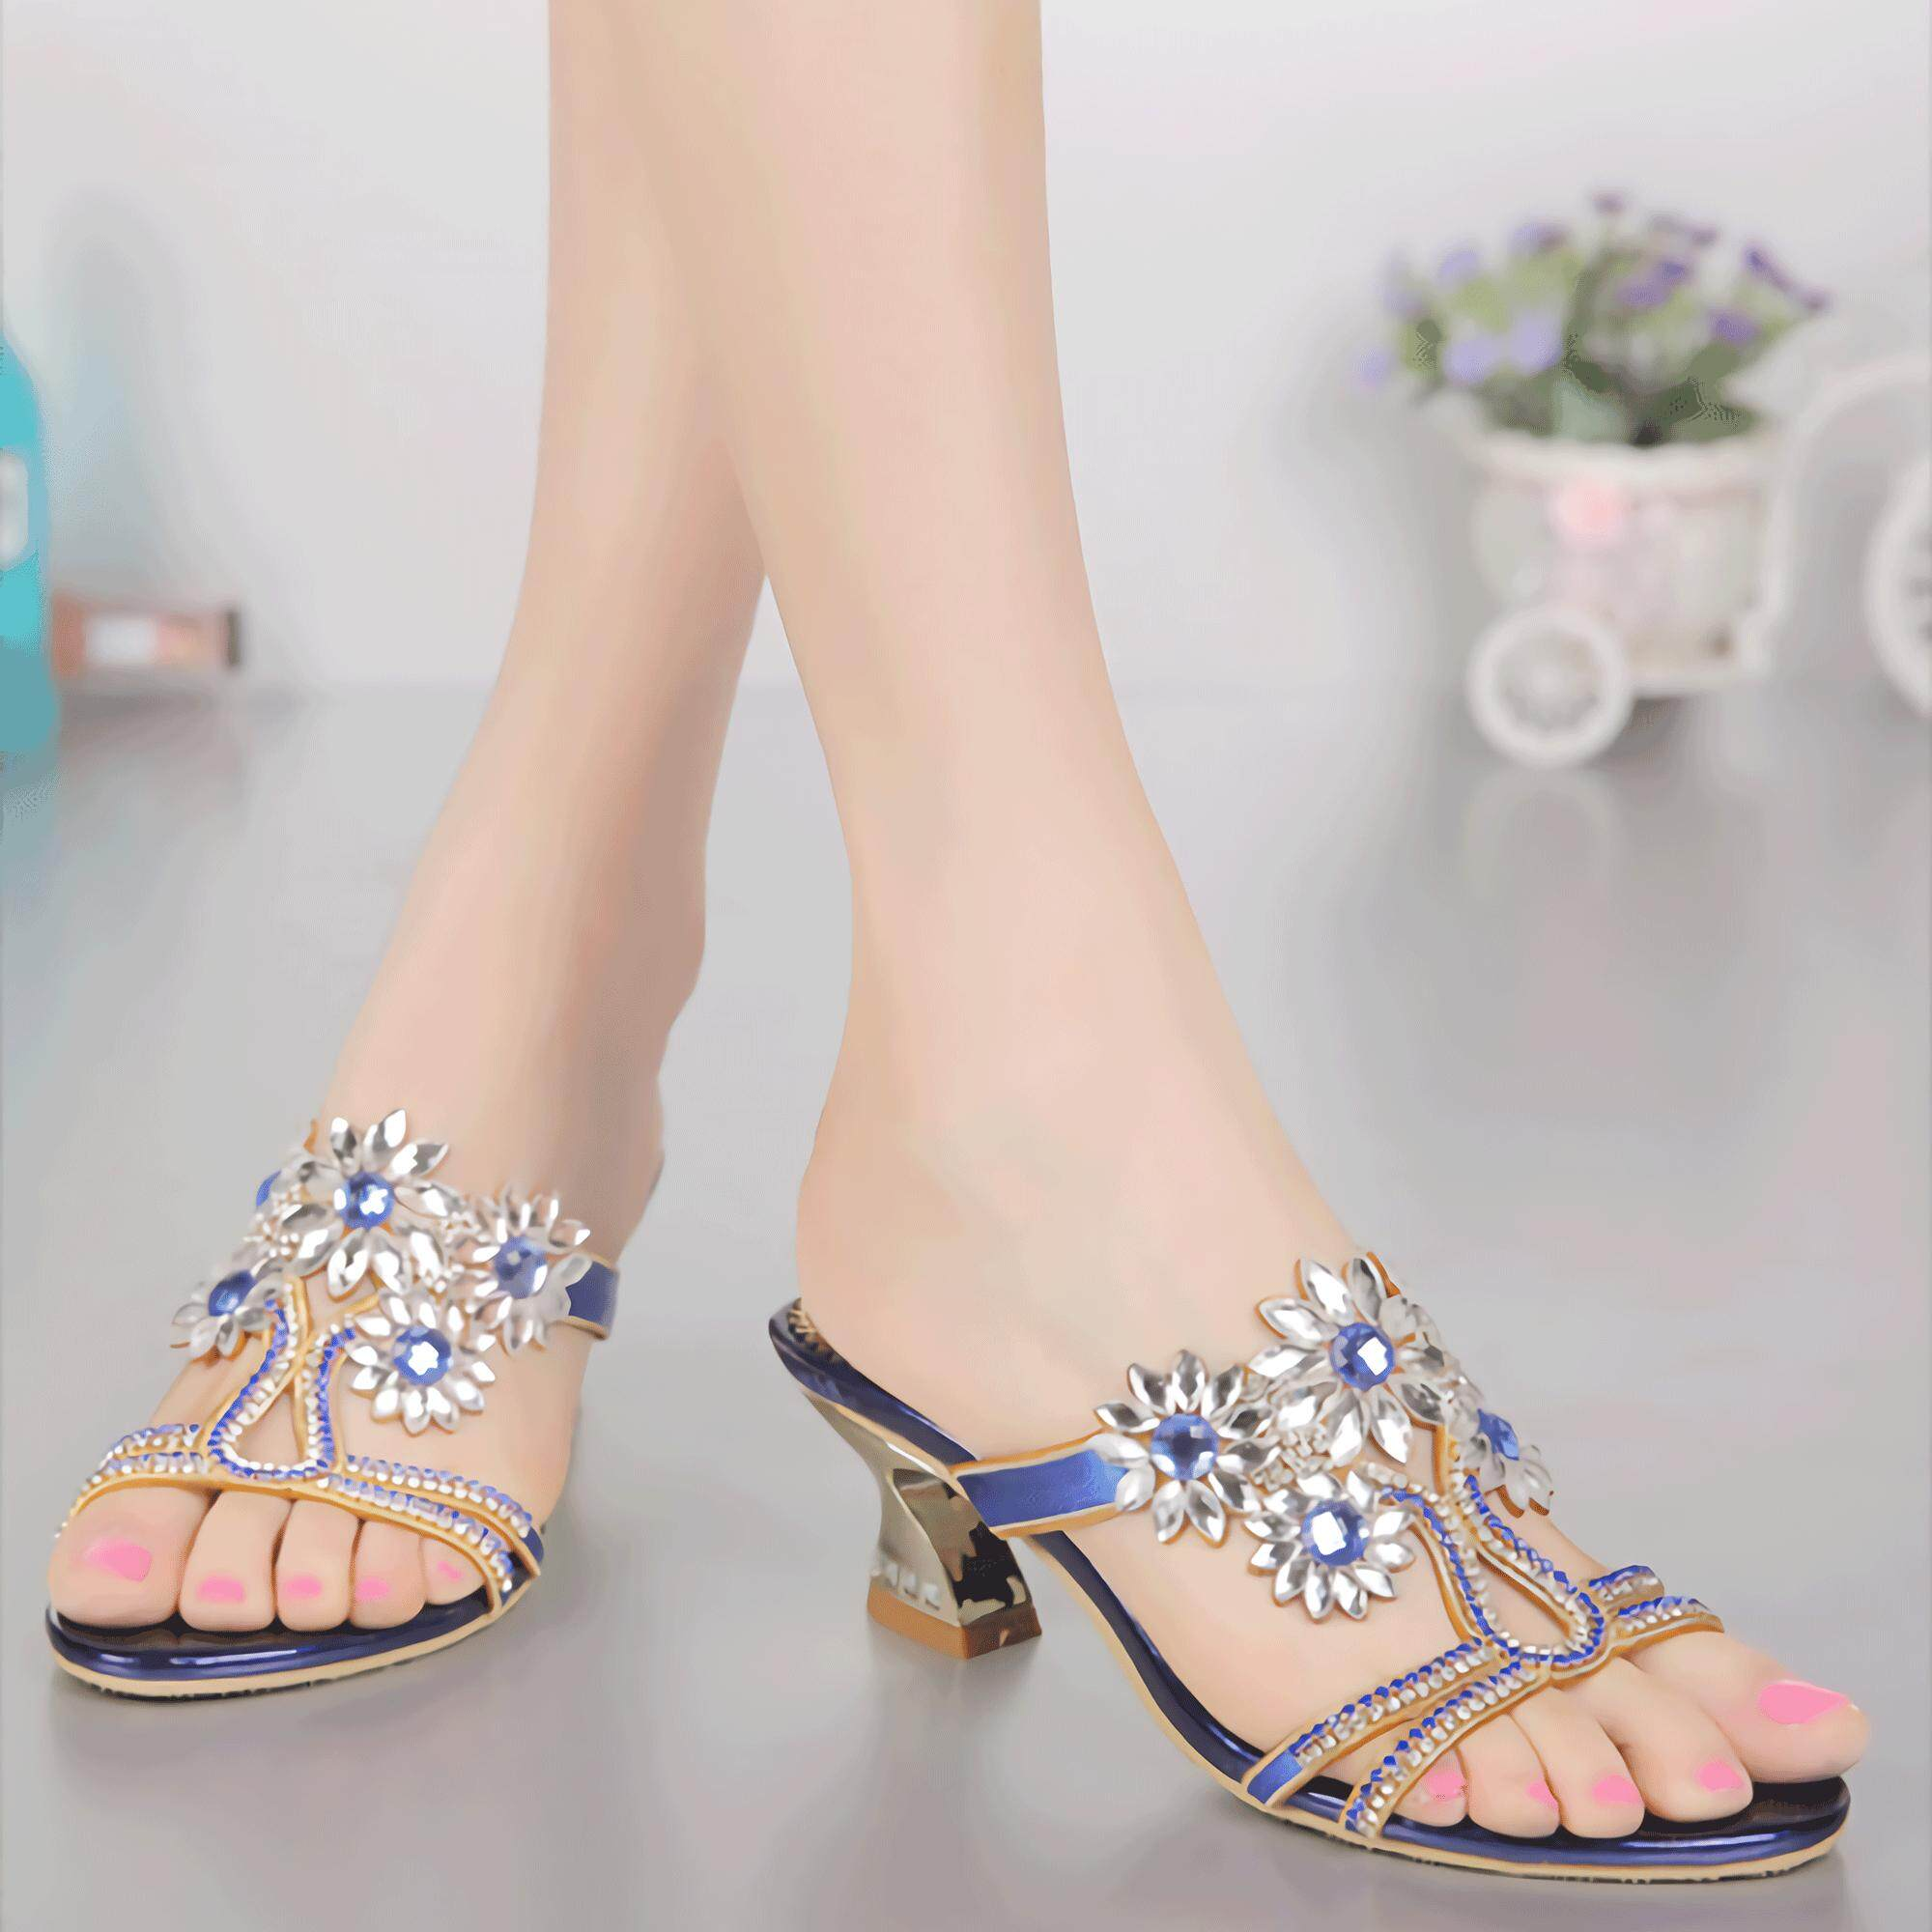 f33eff24b24 Summer Fashion High Heels Women Shoes Rhinestone Microfiber mules for Ladies  Horseshoe Heel Shoes Plus Size